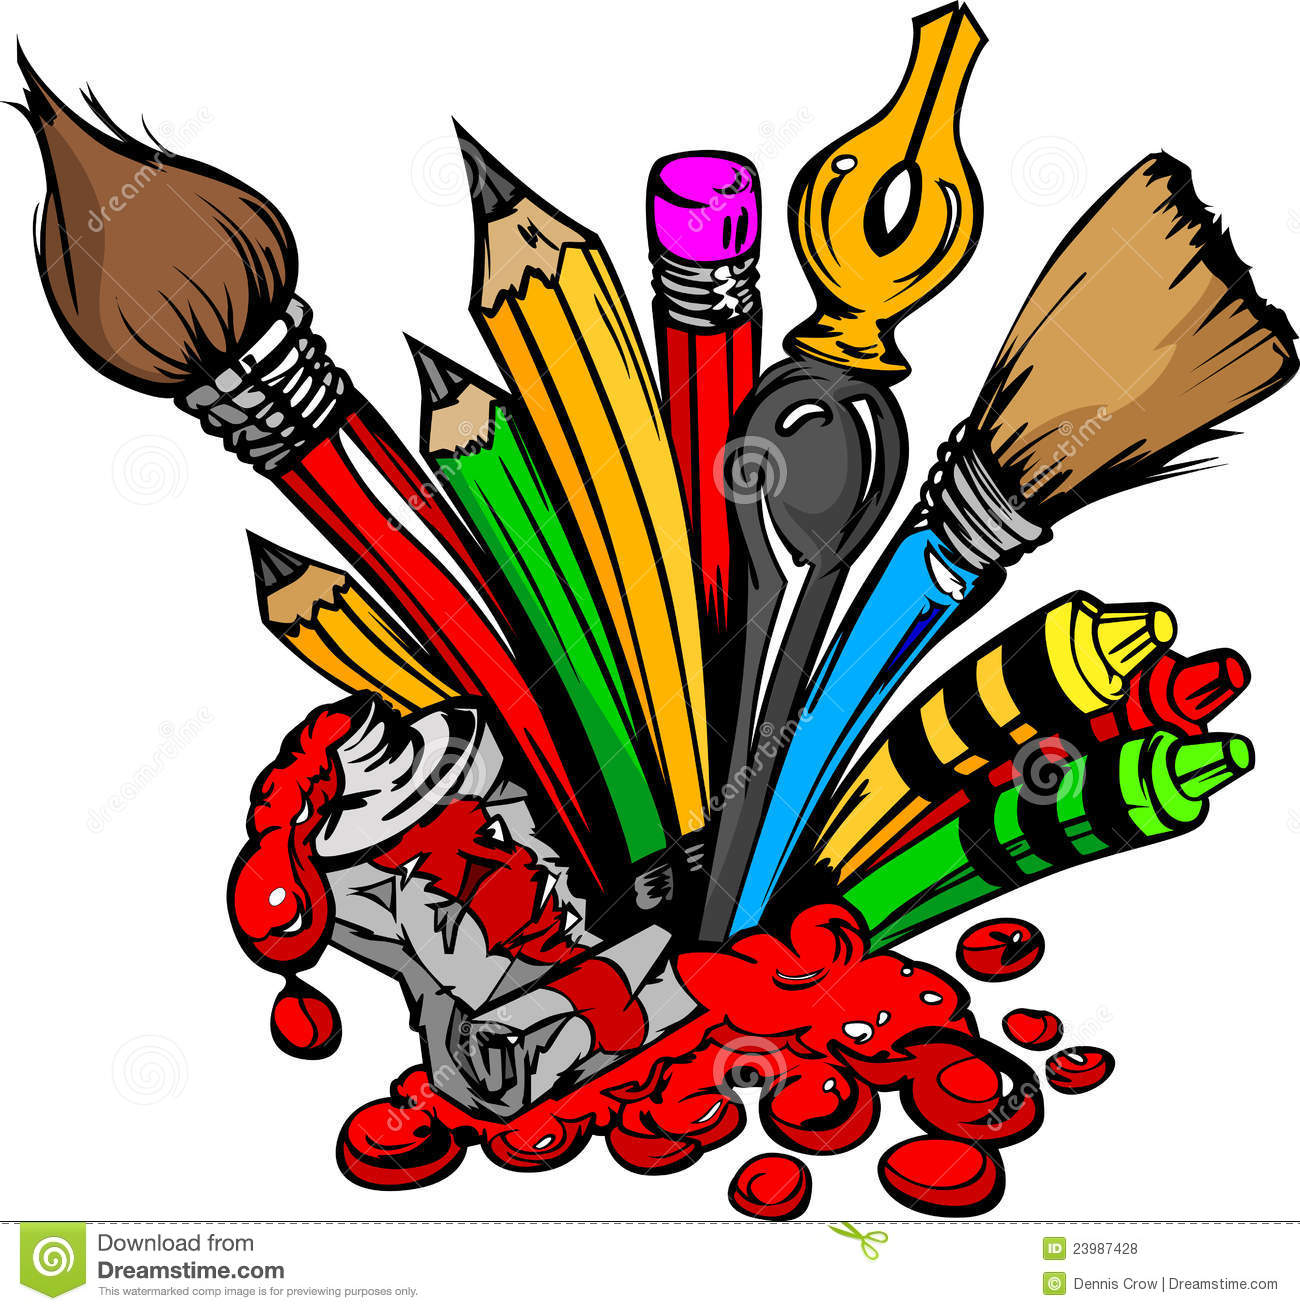 Art materials tools and equipment images